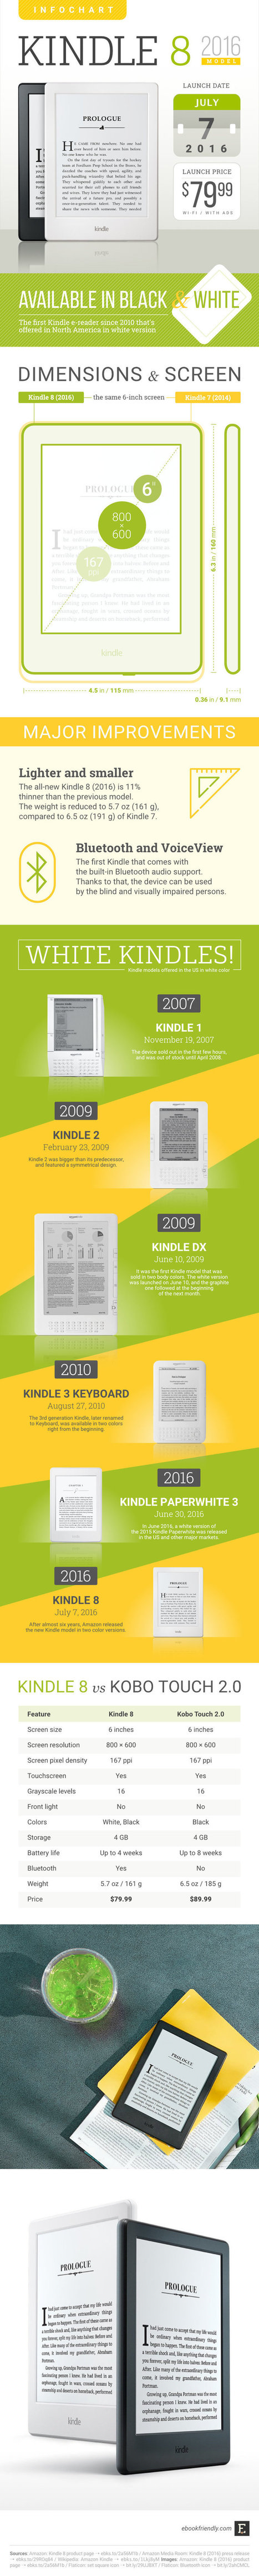 Kindle 8 (2016) – everything you wanted to know (infographic) | AdLit | Scoop.it